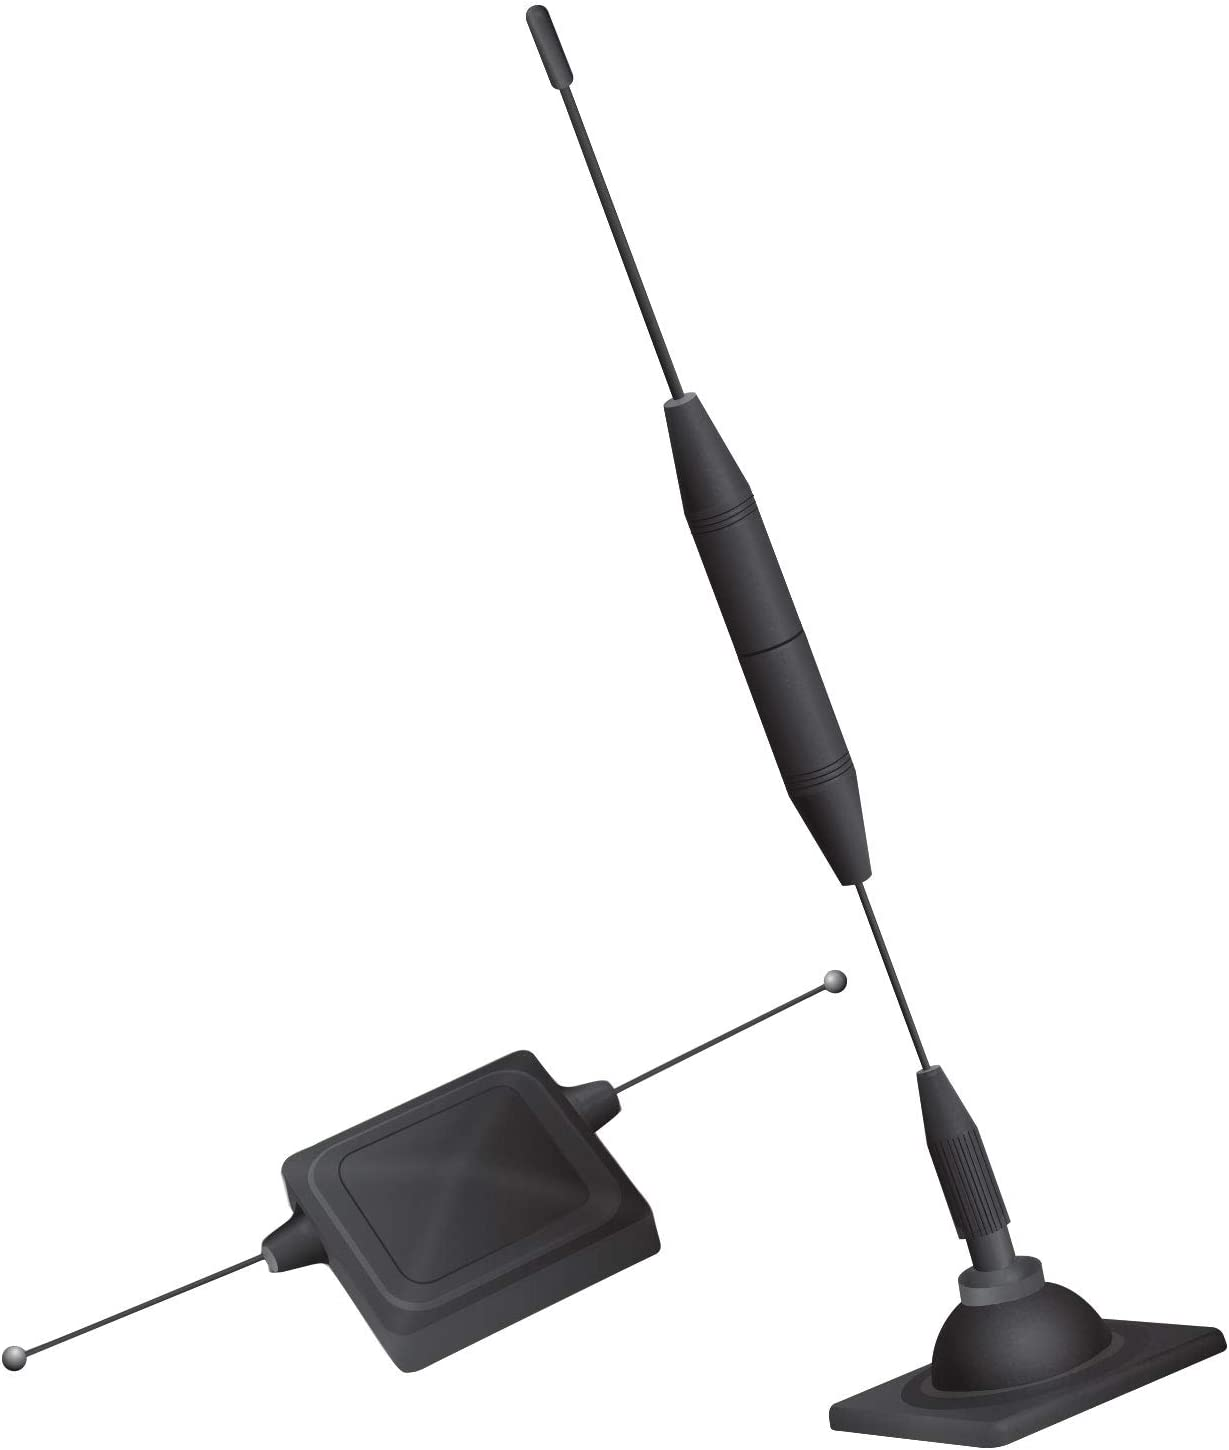 CELL PHONE SIGNAL STRENGTH BOOSTER ANTENNA VERIZON AT&T 4G NEW